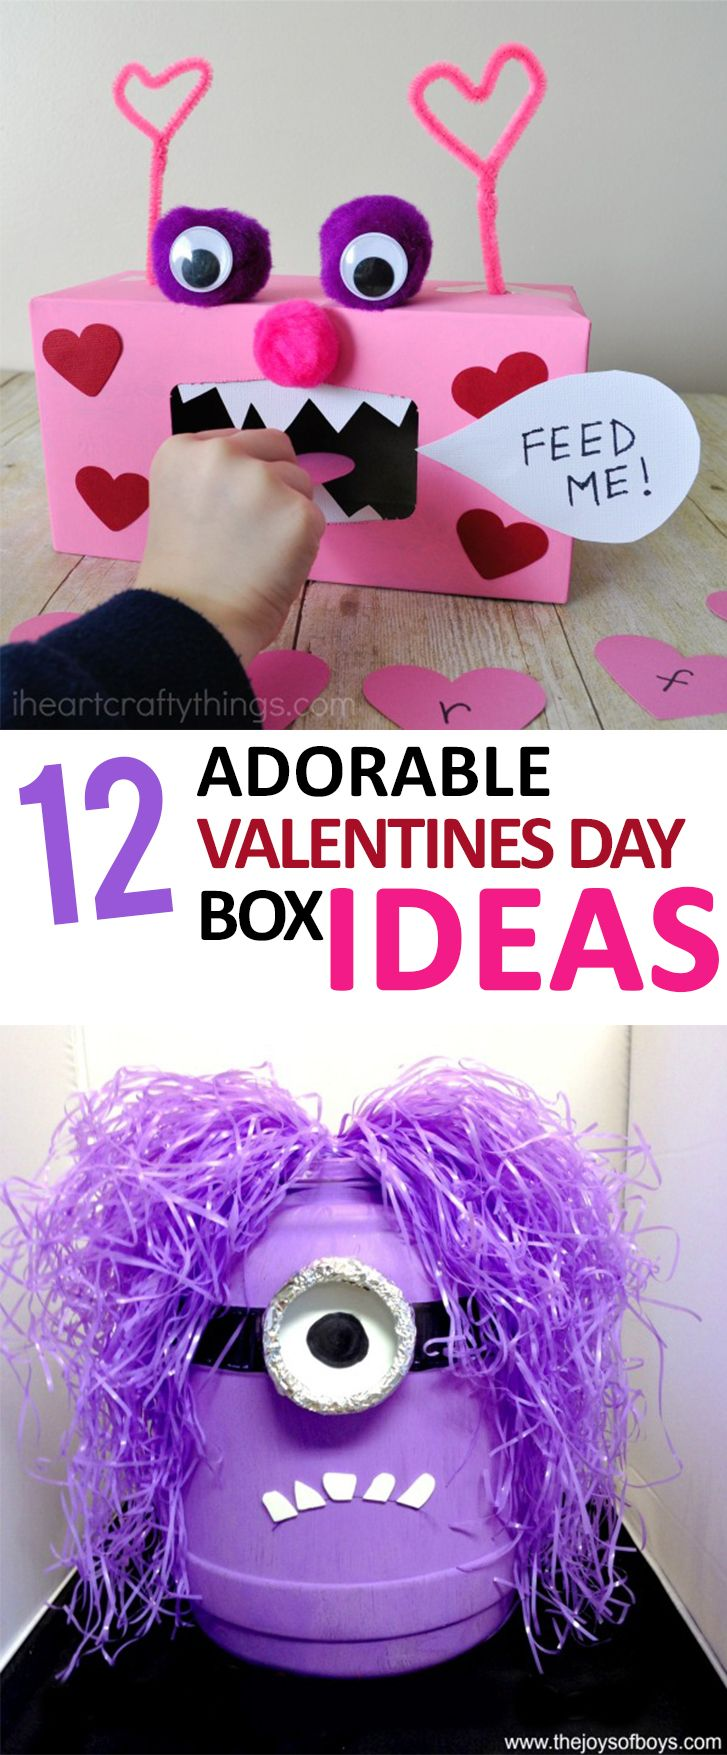 12 Adorable Valentines Day Box Ideas – Sunlit Spaces | DIY Home Decor, Holiday, and More